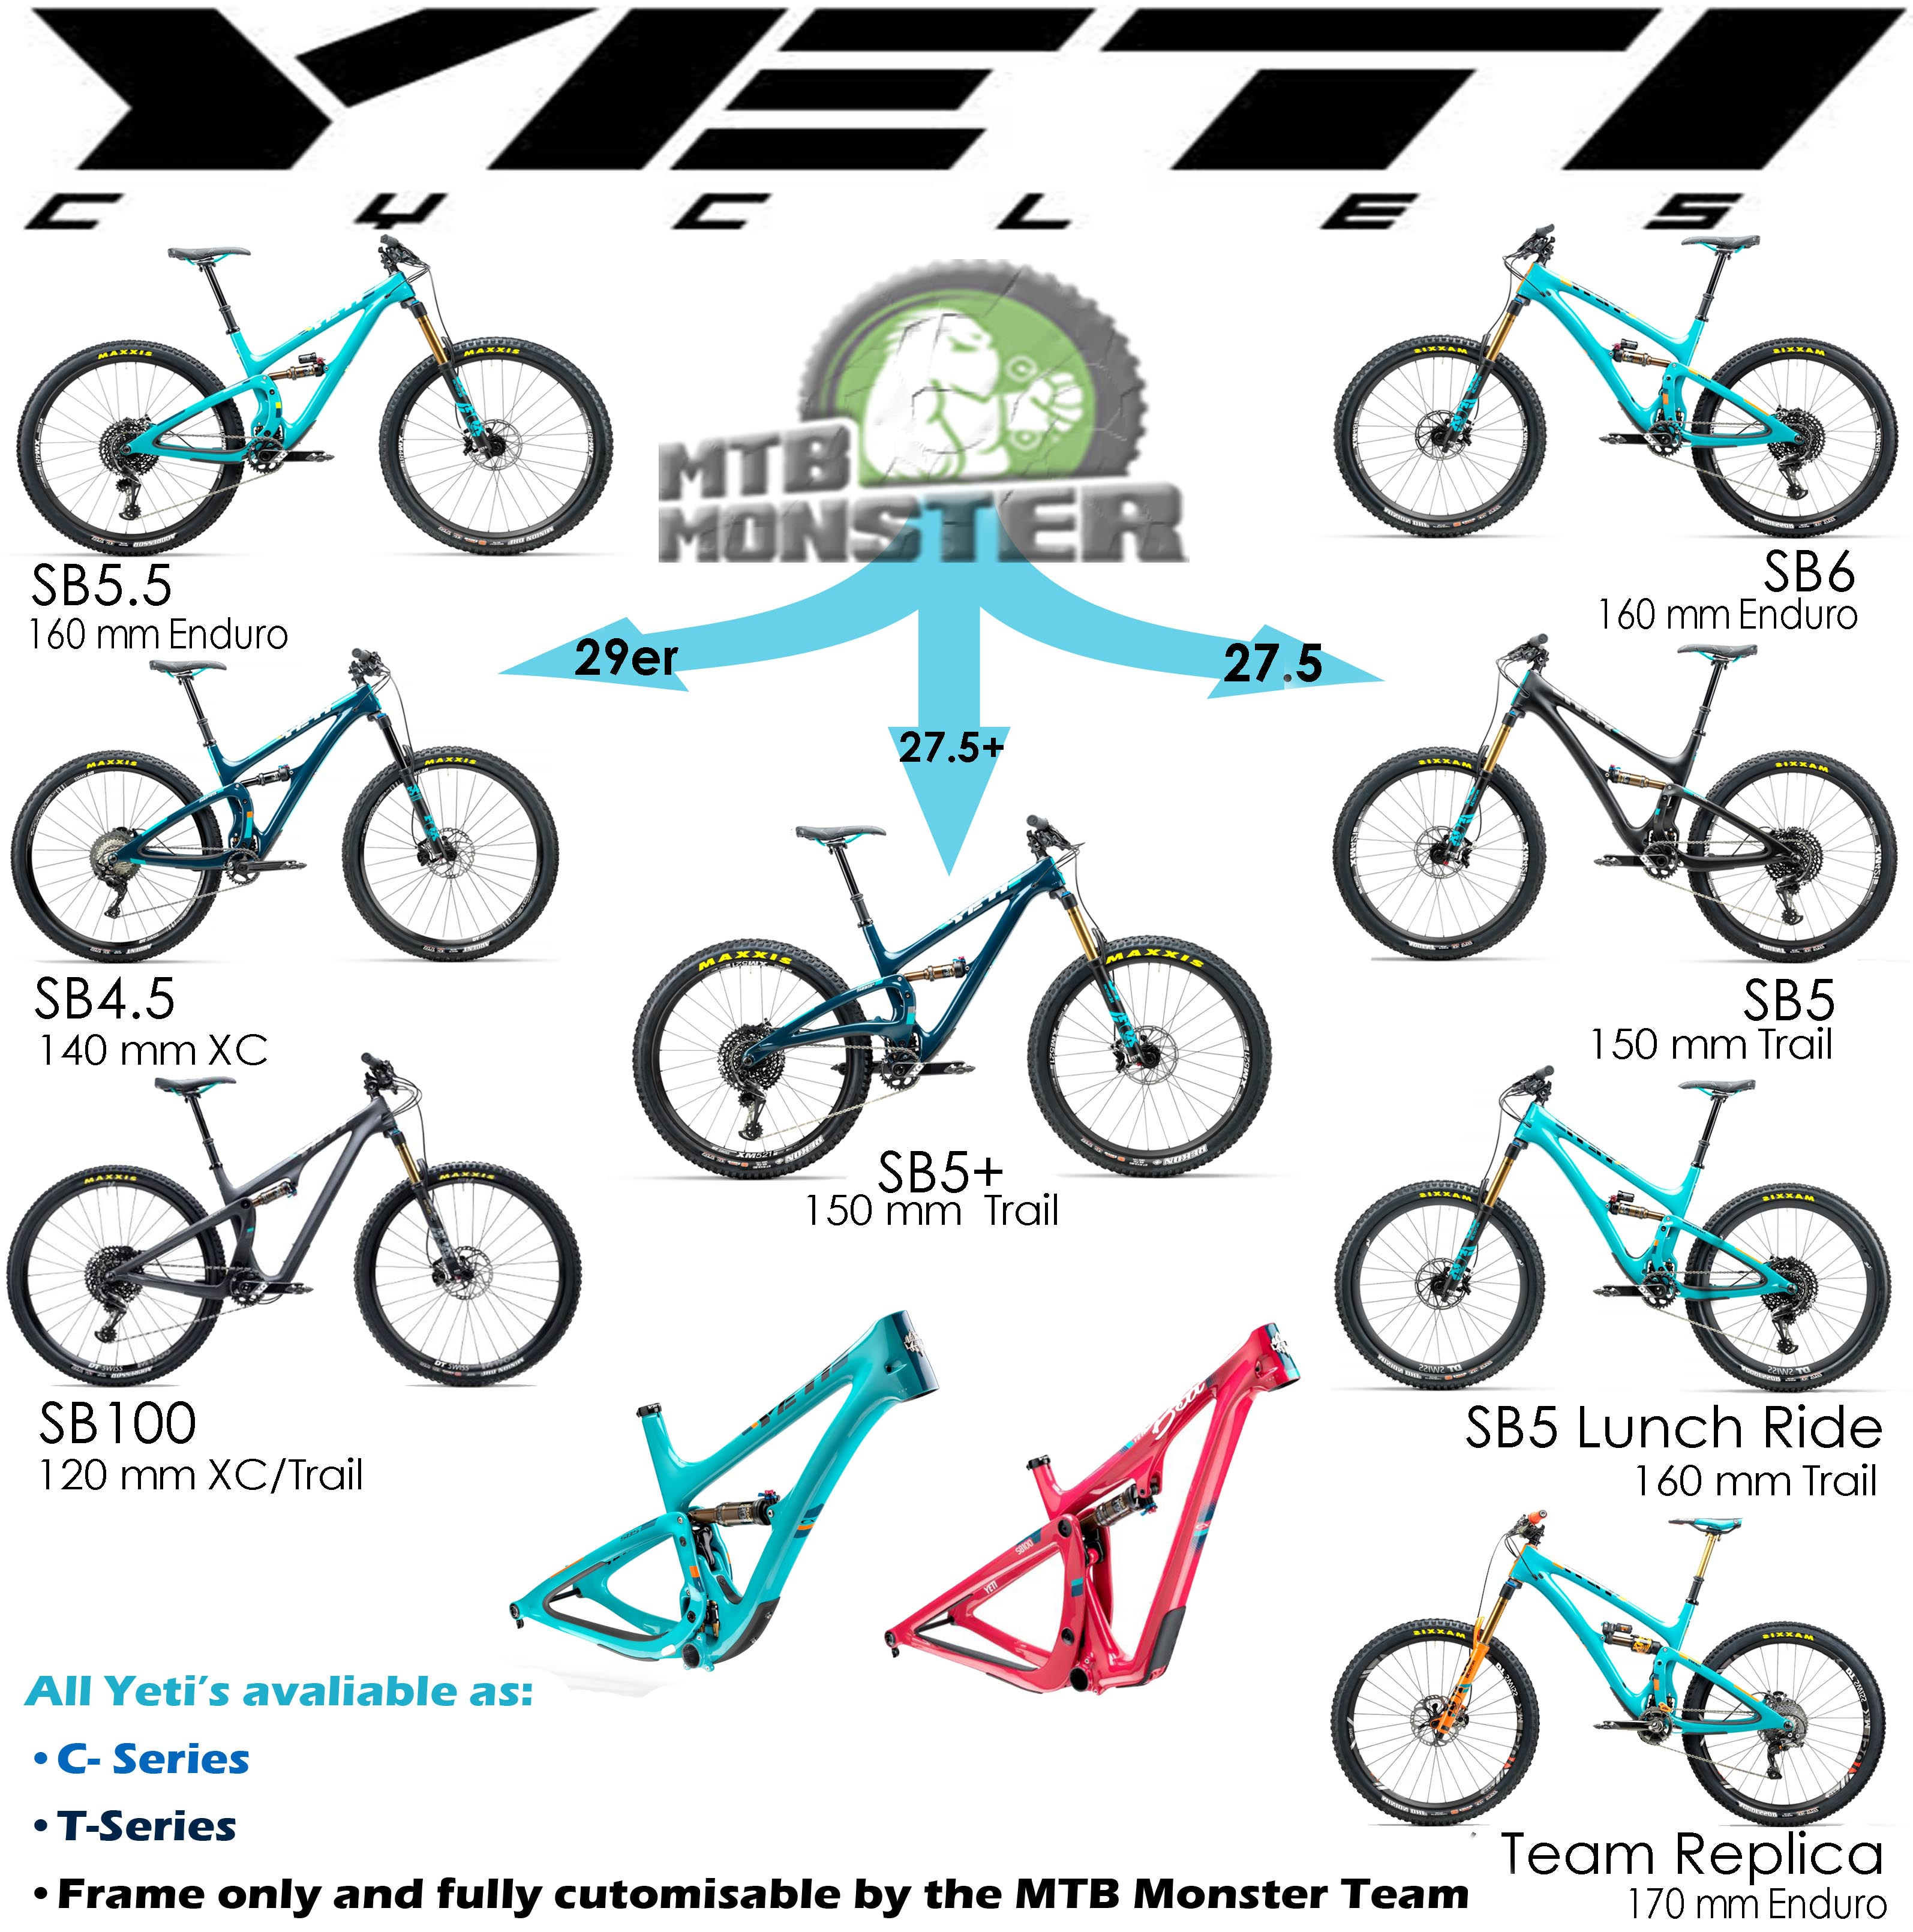 Yeti Mountain Bikes: Differences in wheel size and front suspension